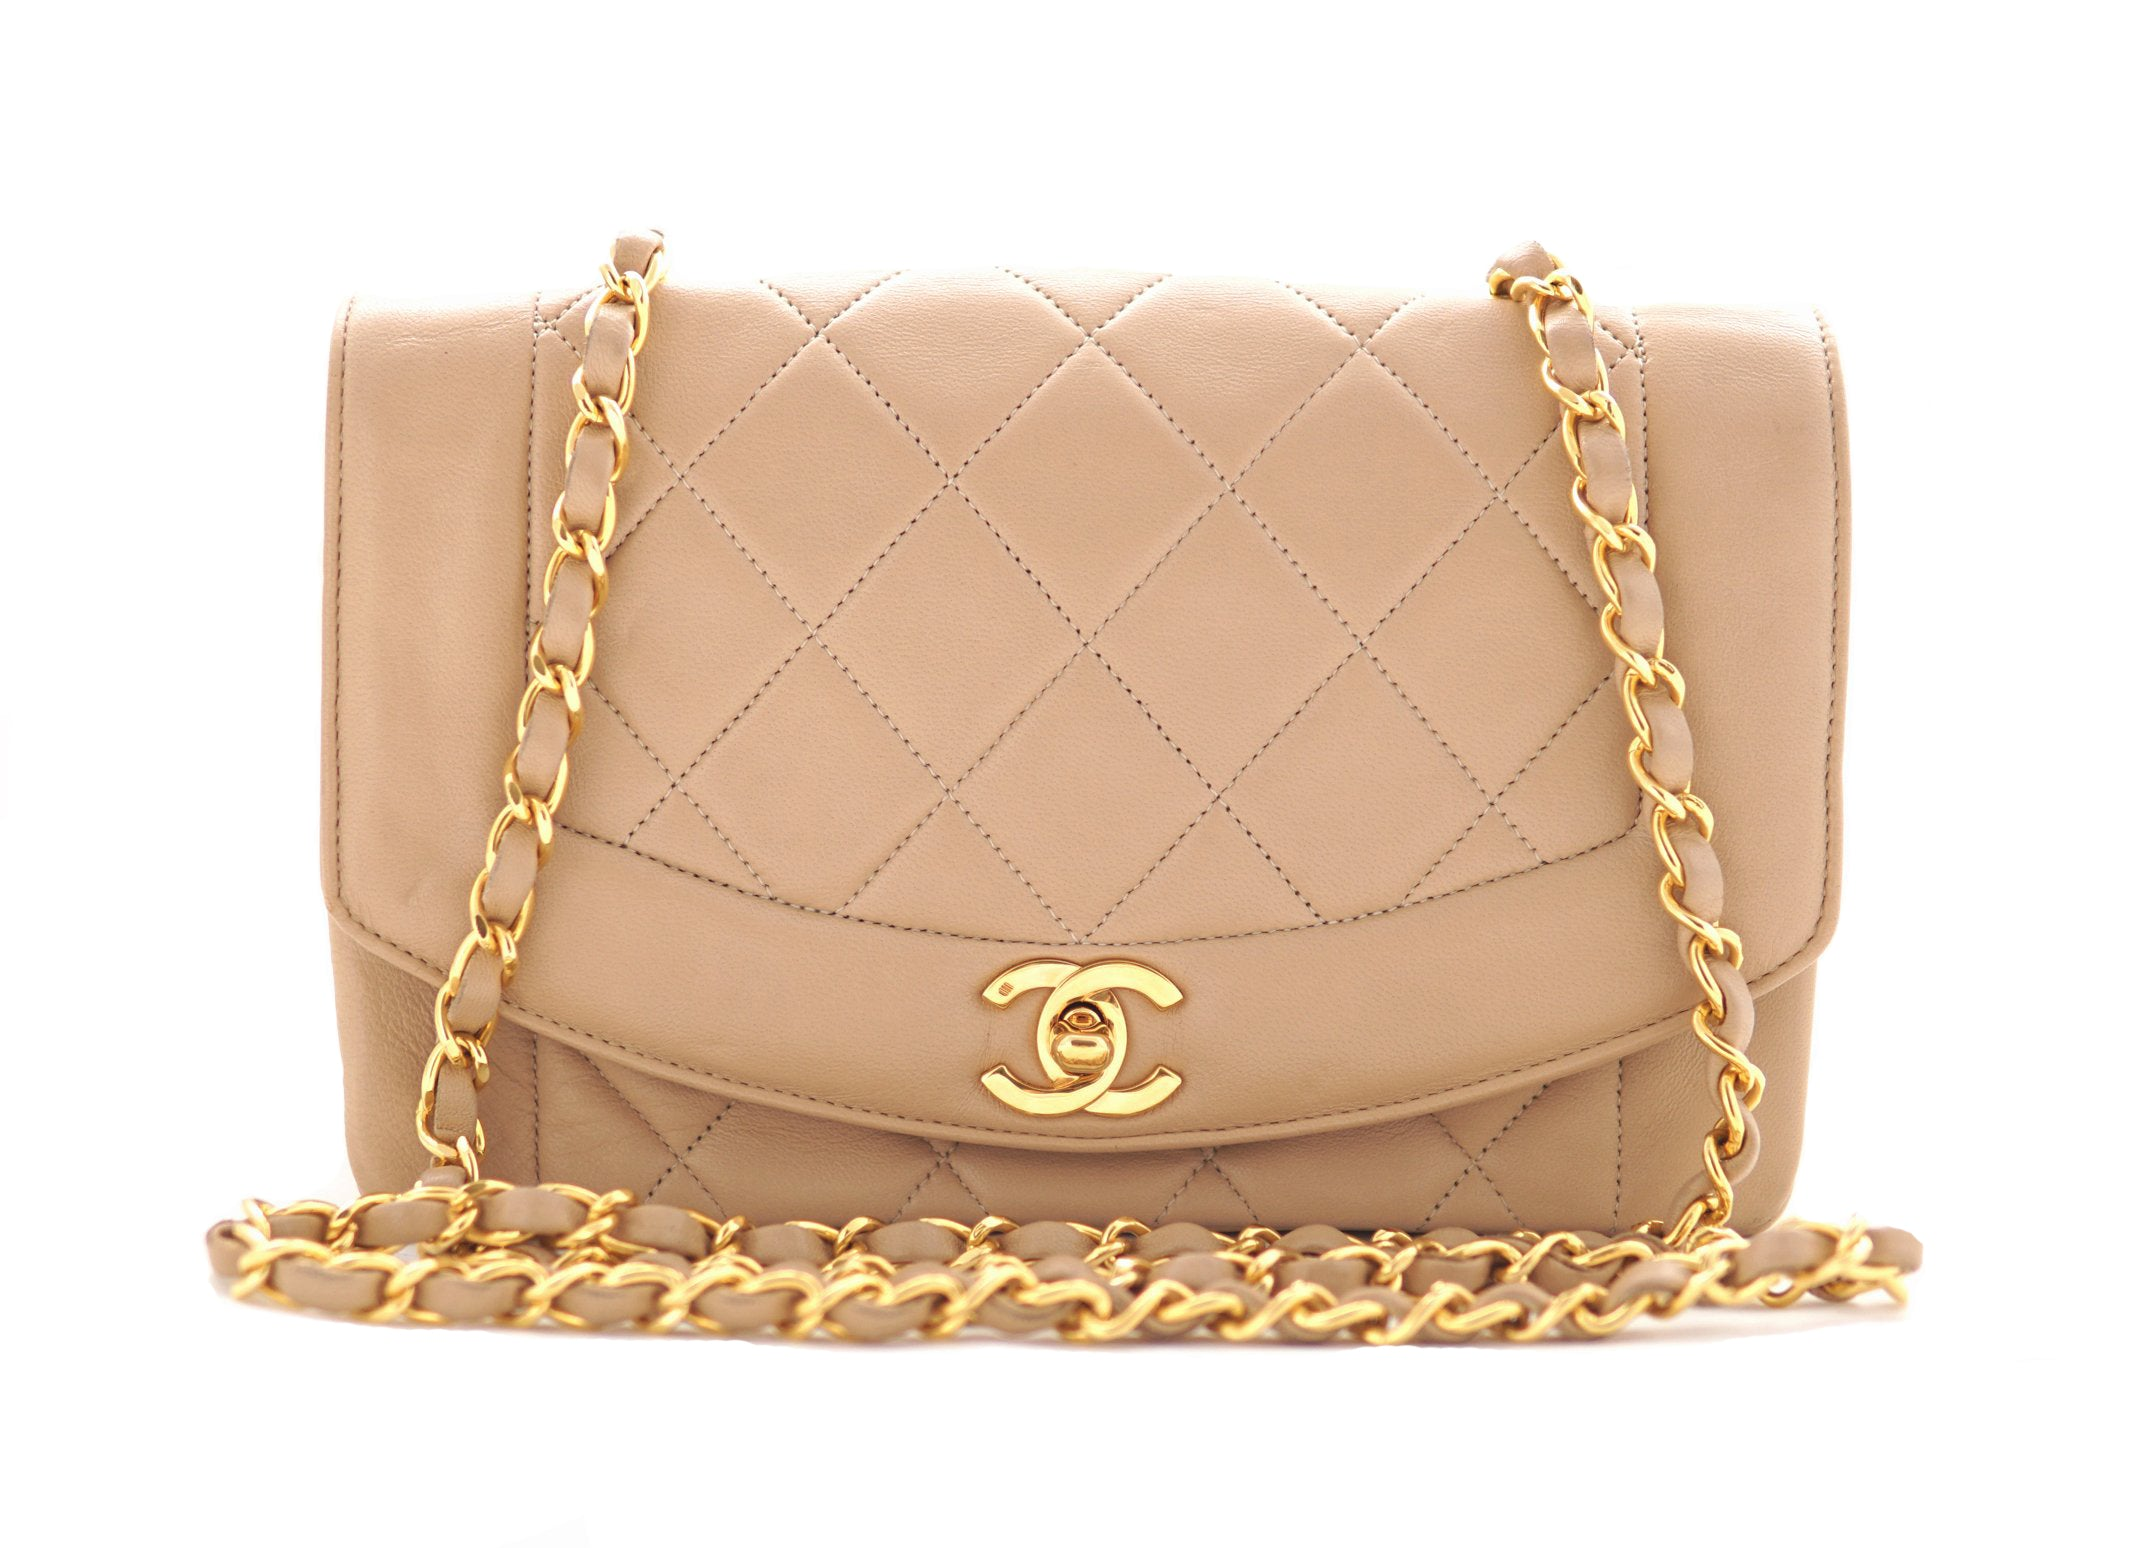 15e23e09b14e2d CHANEL VINTAGE DIANA FLAP BAG - Quilted Lambskin in Beige